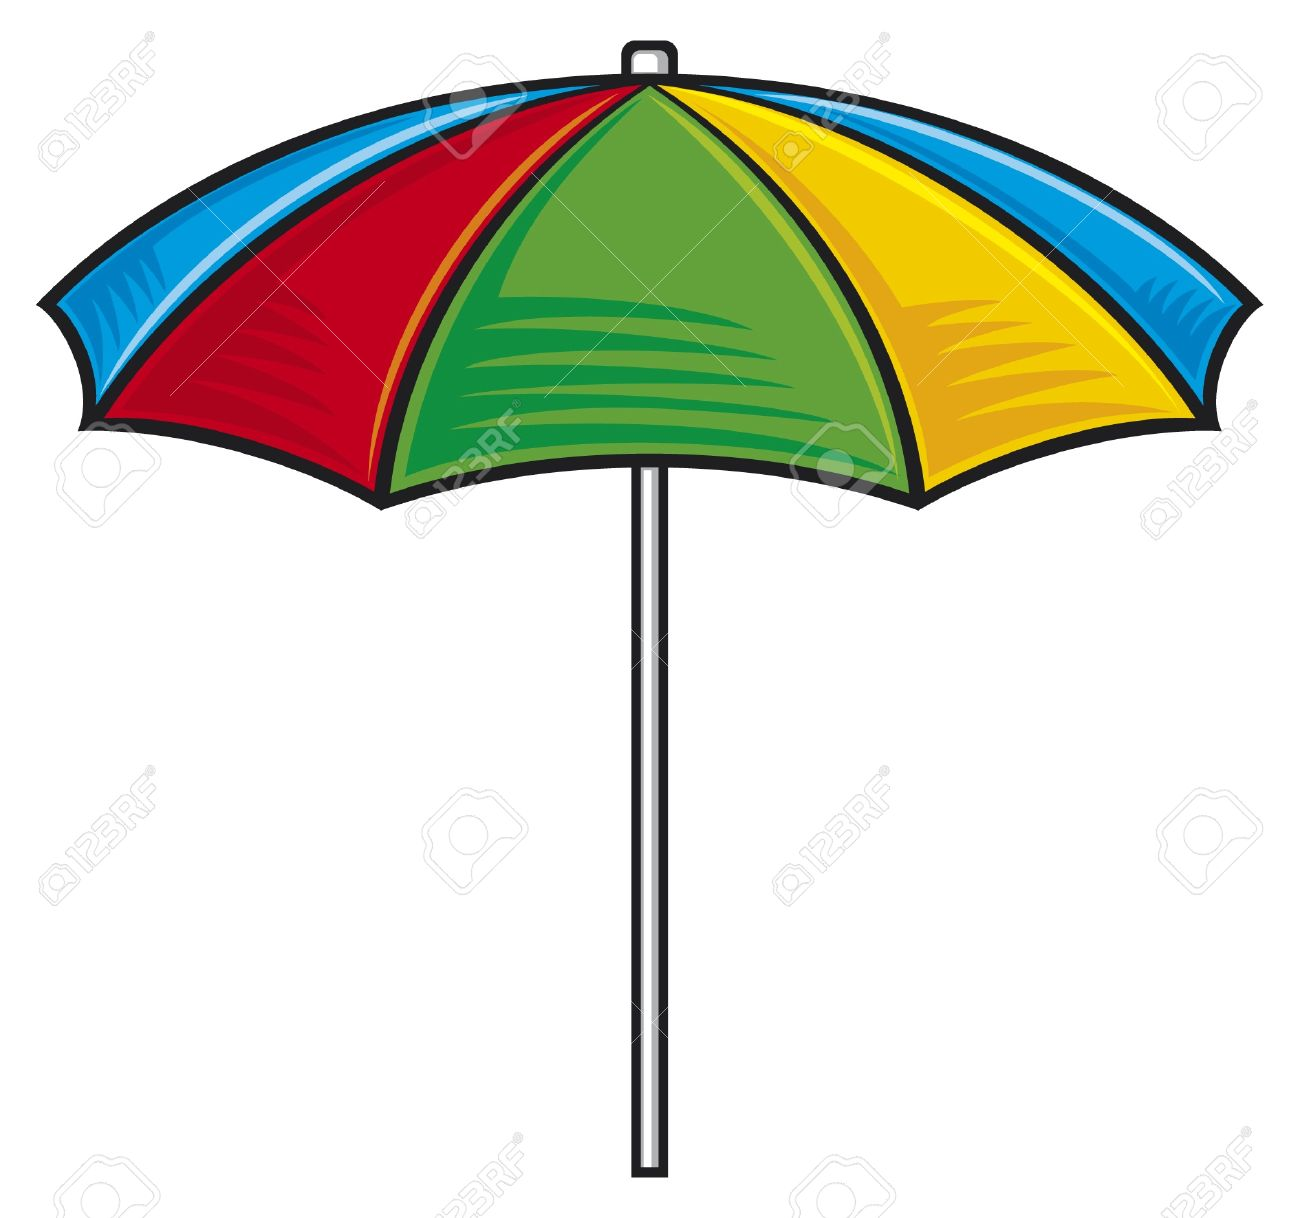 Illustration Of Colorful Beach Umbrella Royalty Free Cliparts.